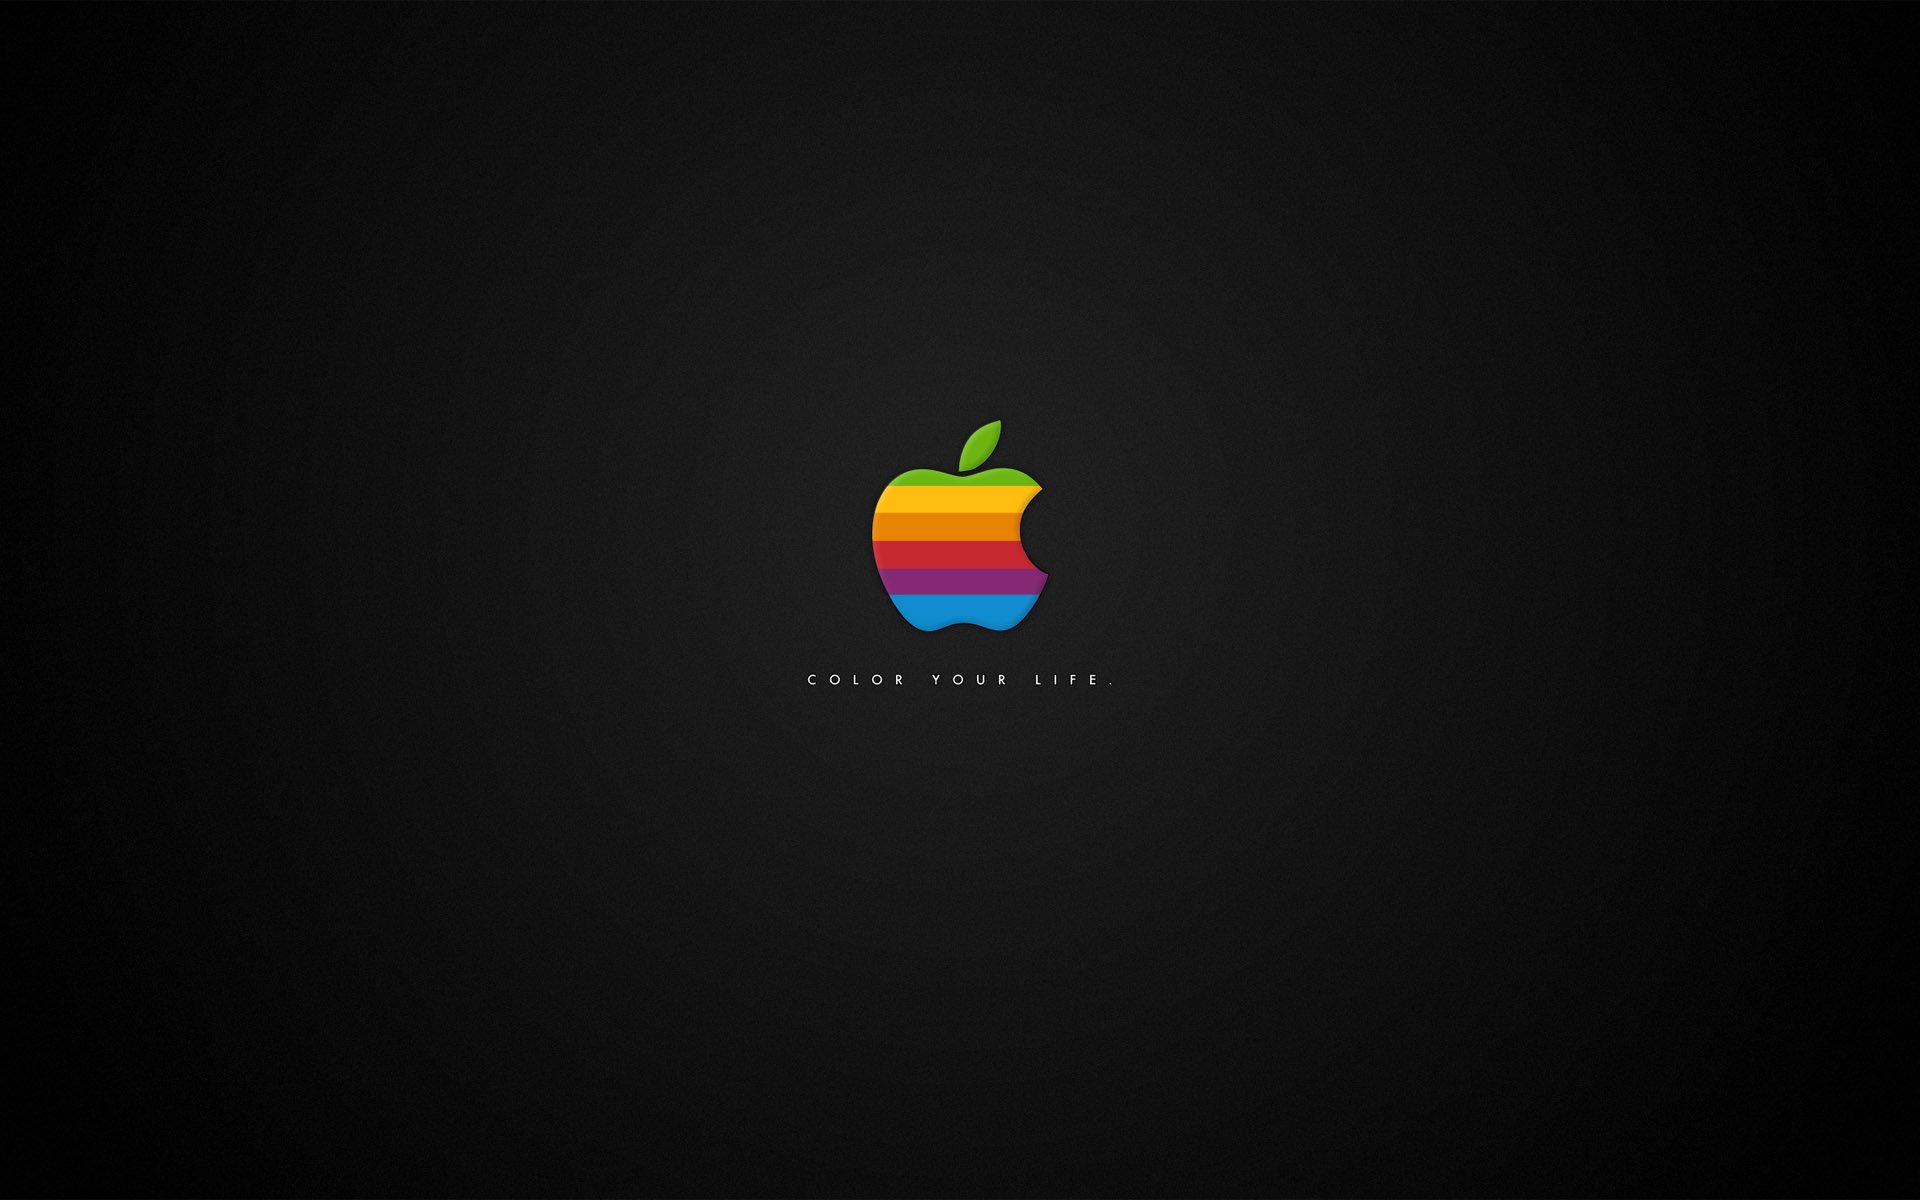 HD Apple wallpaper 17987